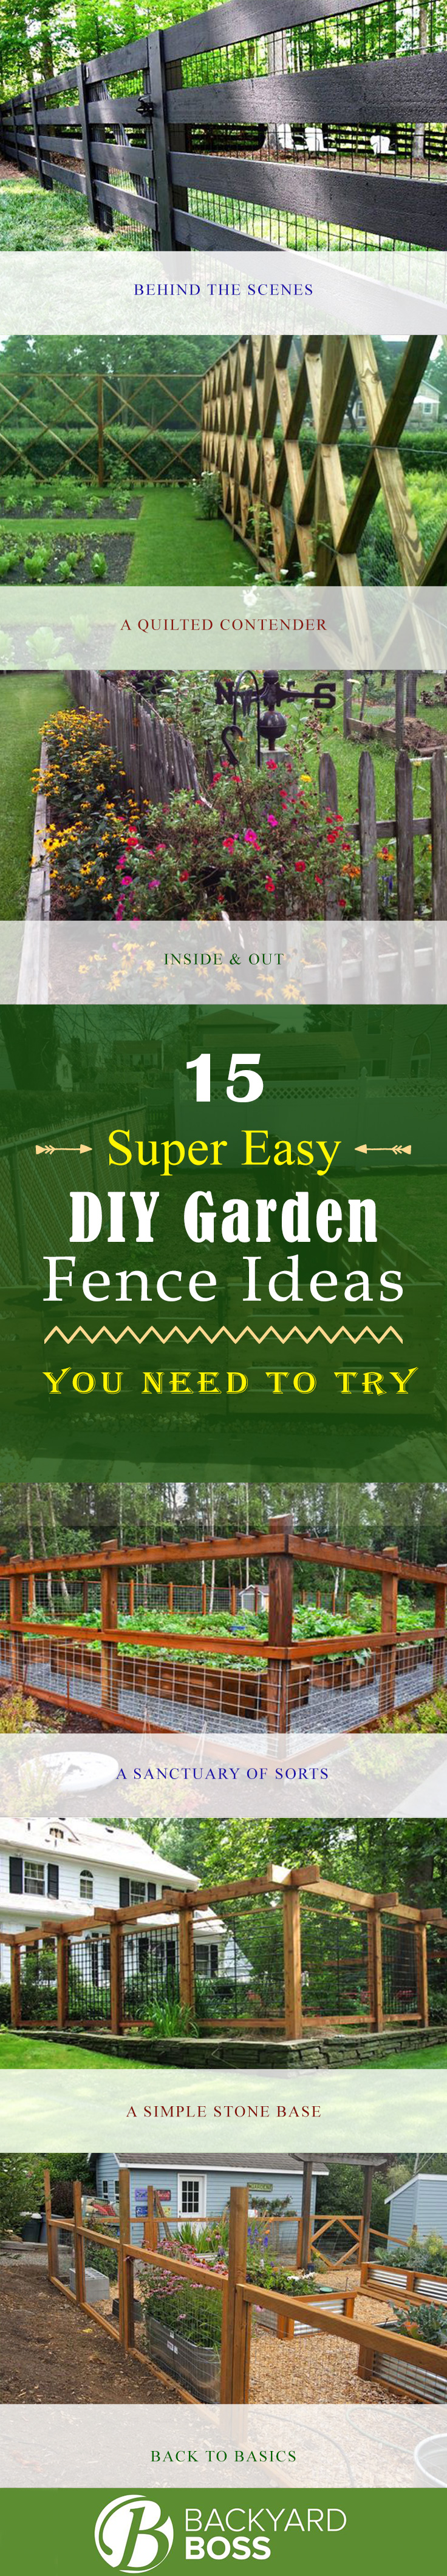 Magnificent 15 Super Easy Diy Garden Fence Ideas You Need To Try 1 Backyard Fence Diy Diy Backyard Fence No Dig outdoor Diy Backyard Fence